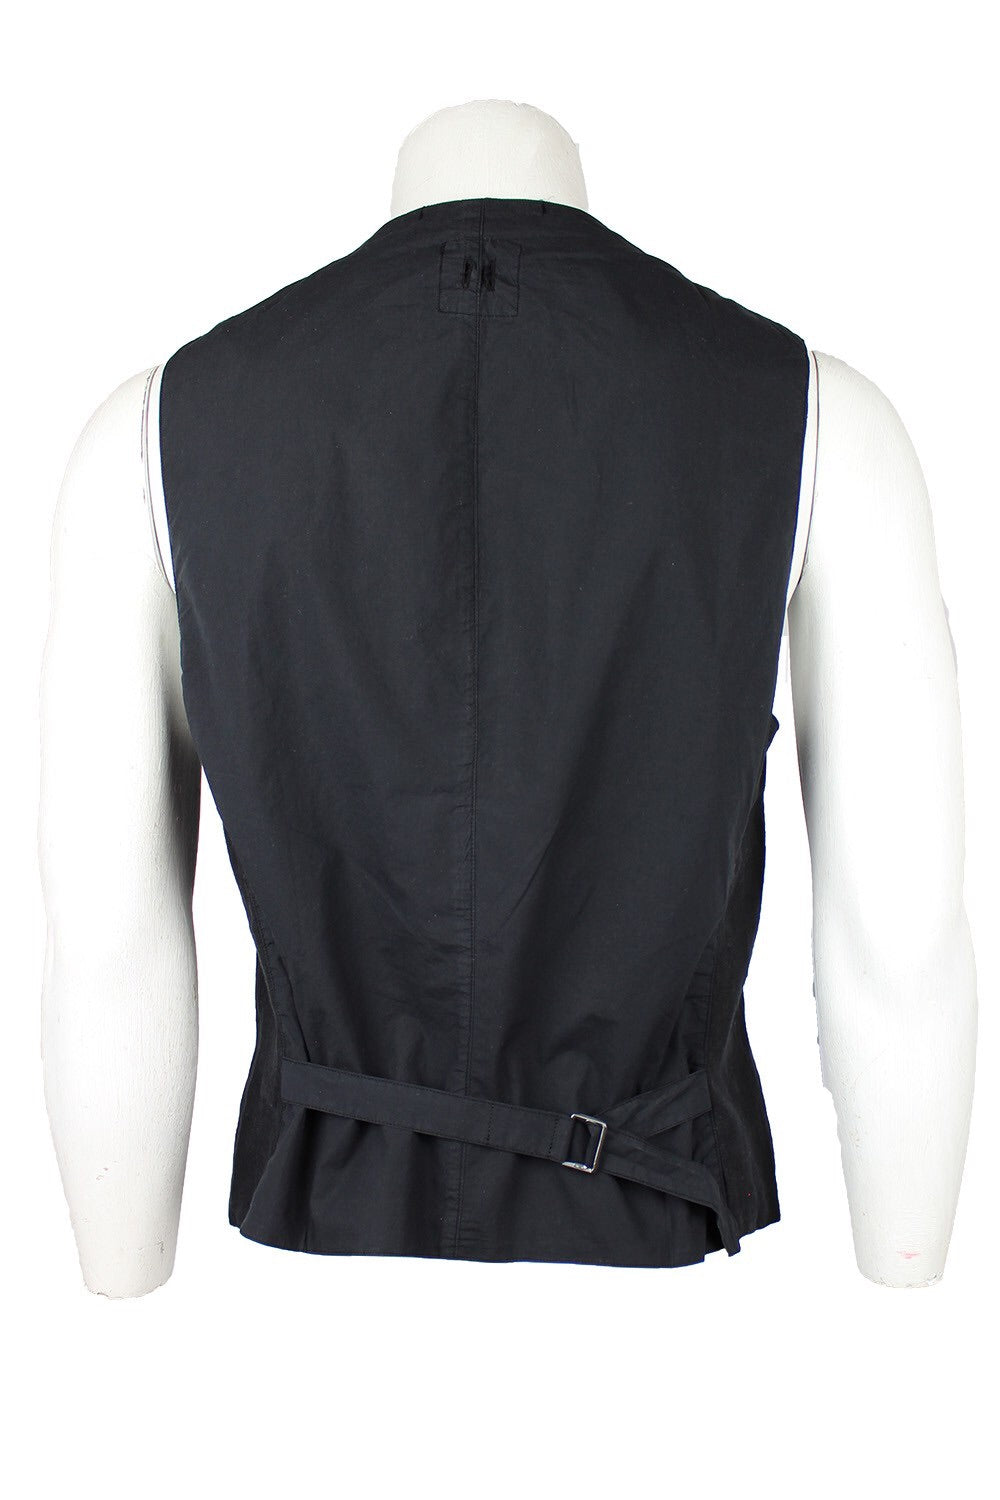 Hannes Roether Black Linen Vest - LAST ONE!